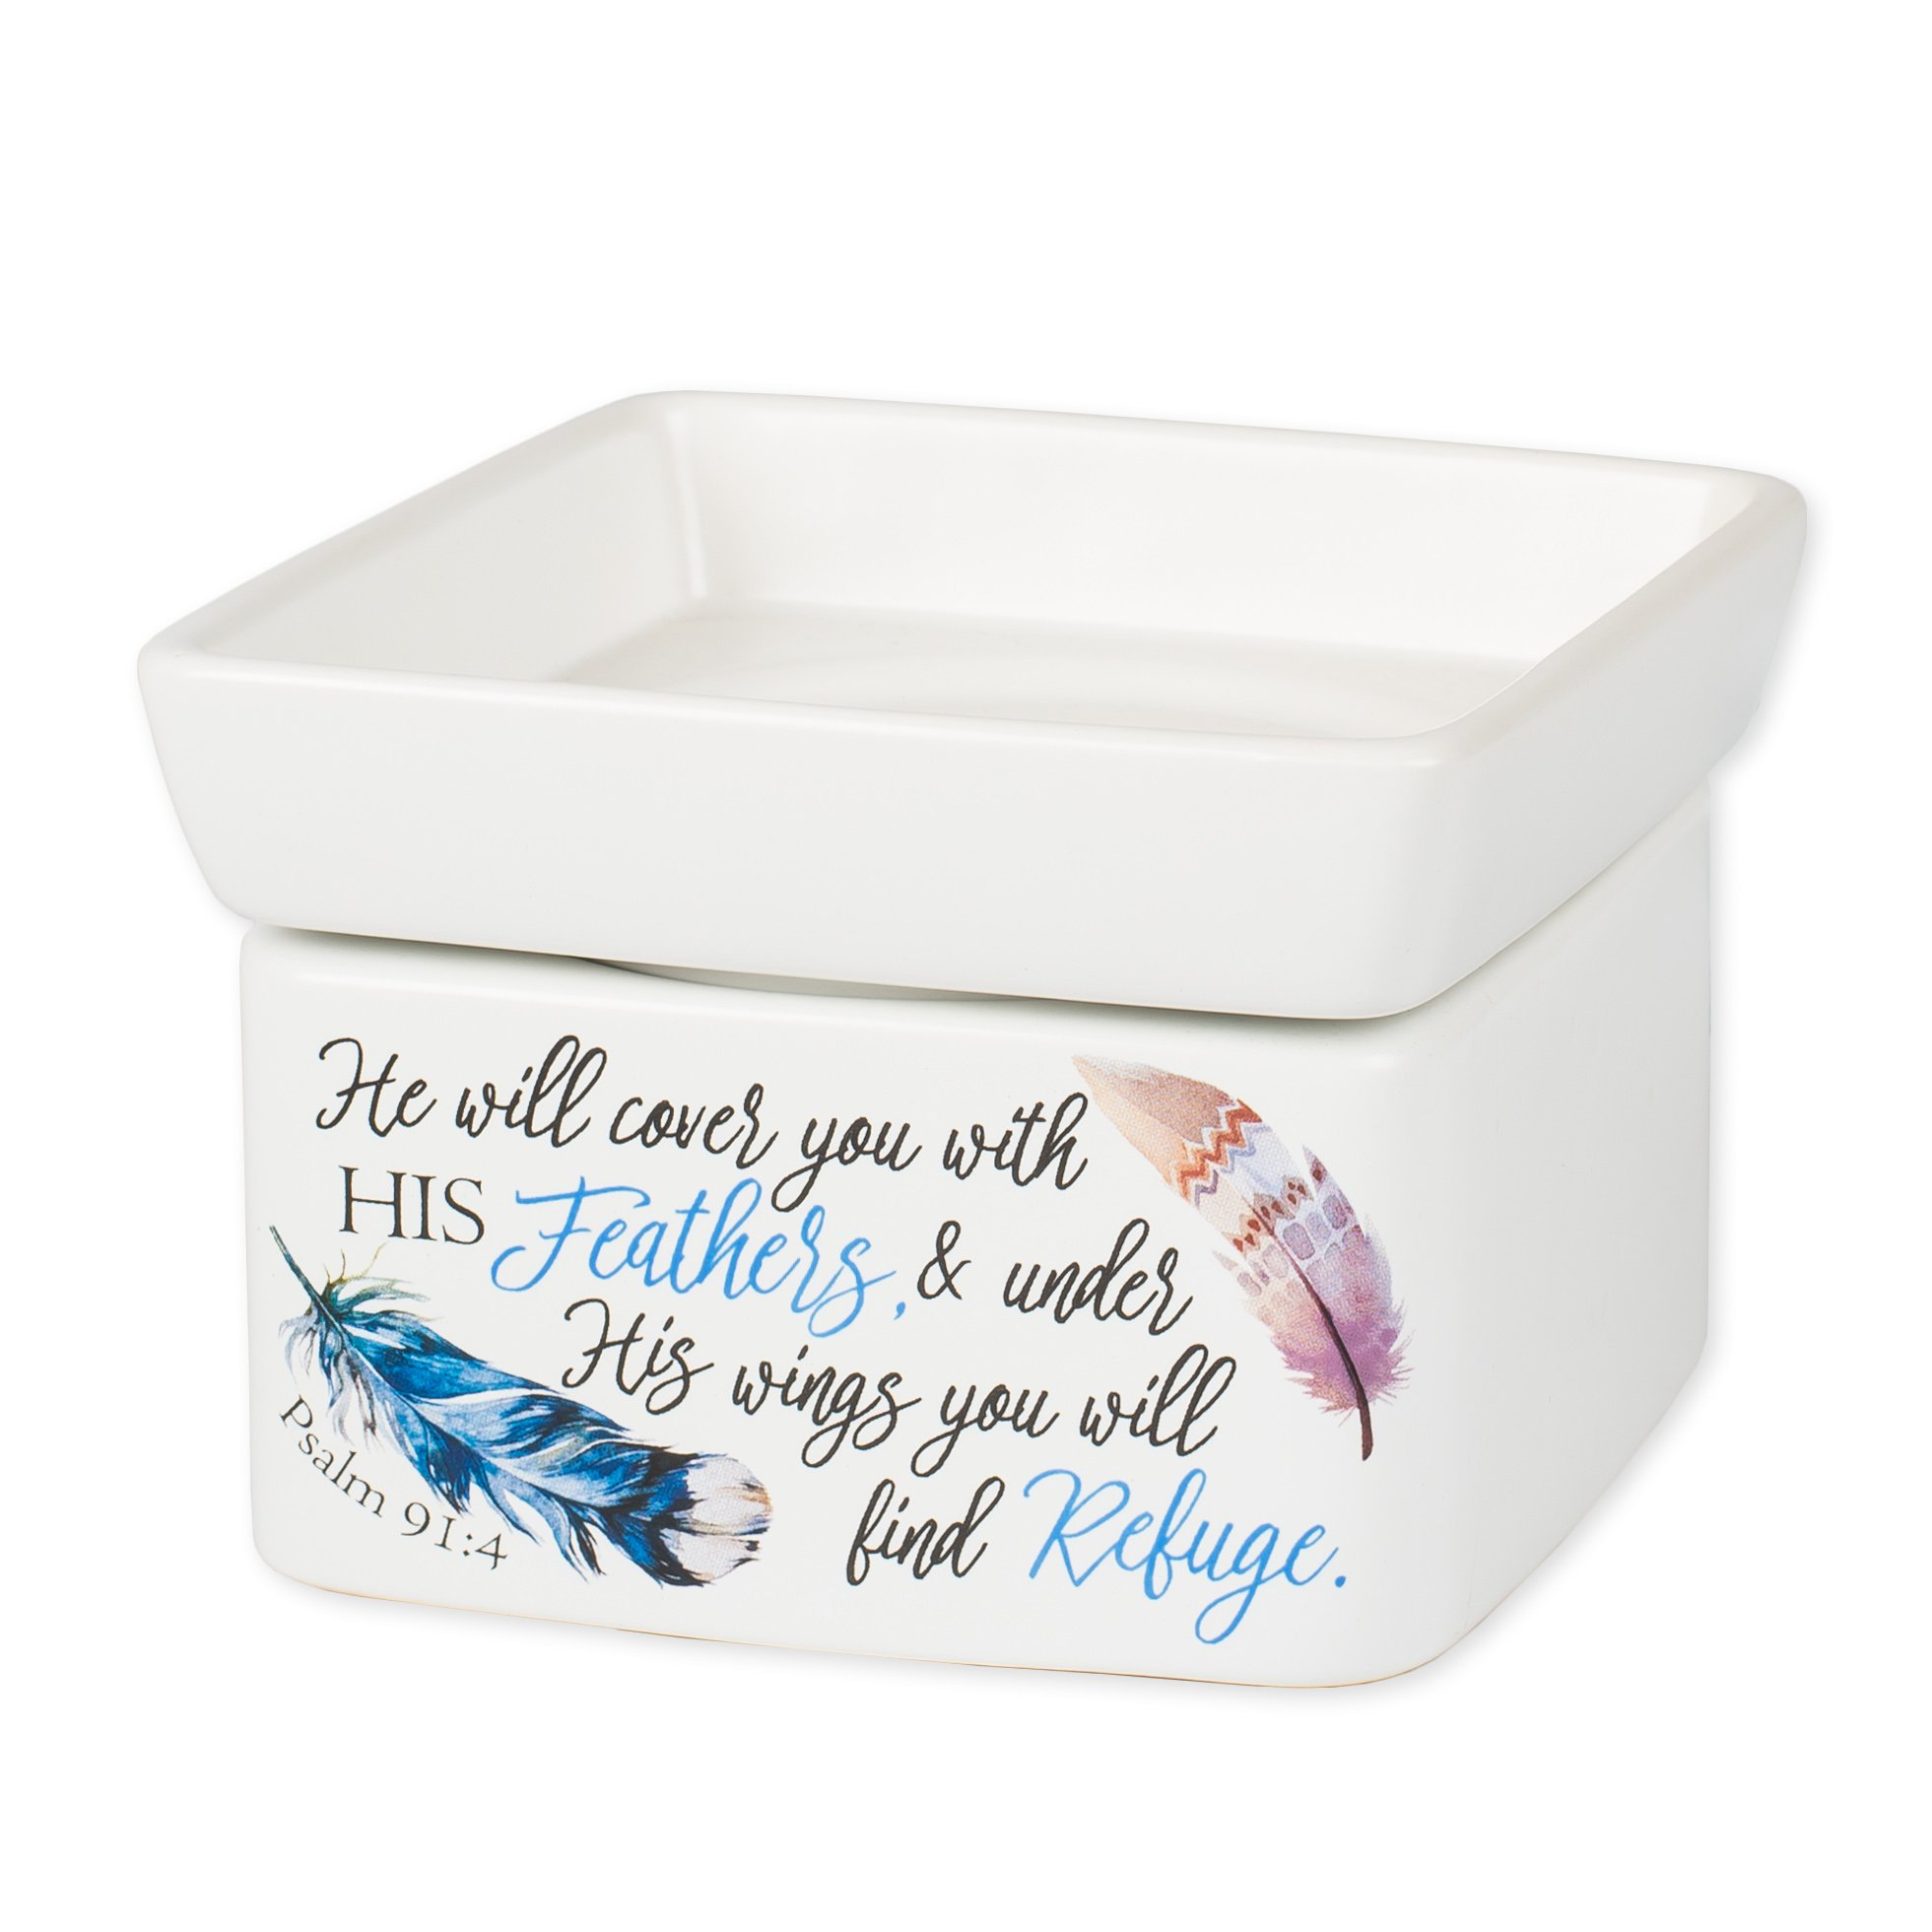 Elanze Designs Refuge Under His Wings Feathers Psalm 91:4 Stoneware Electric 2 in 1 Jar Candle and Wax Tart Oil Warmer